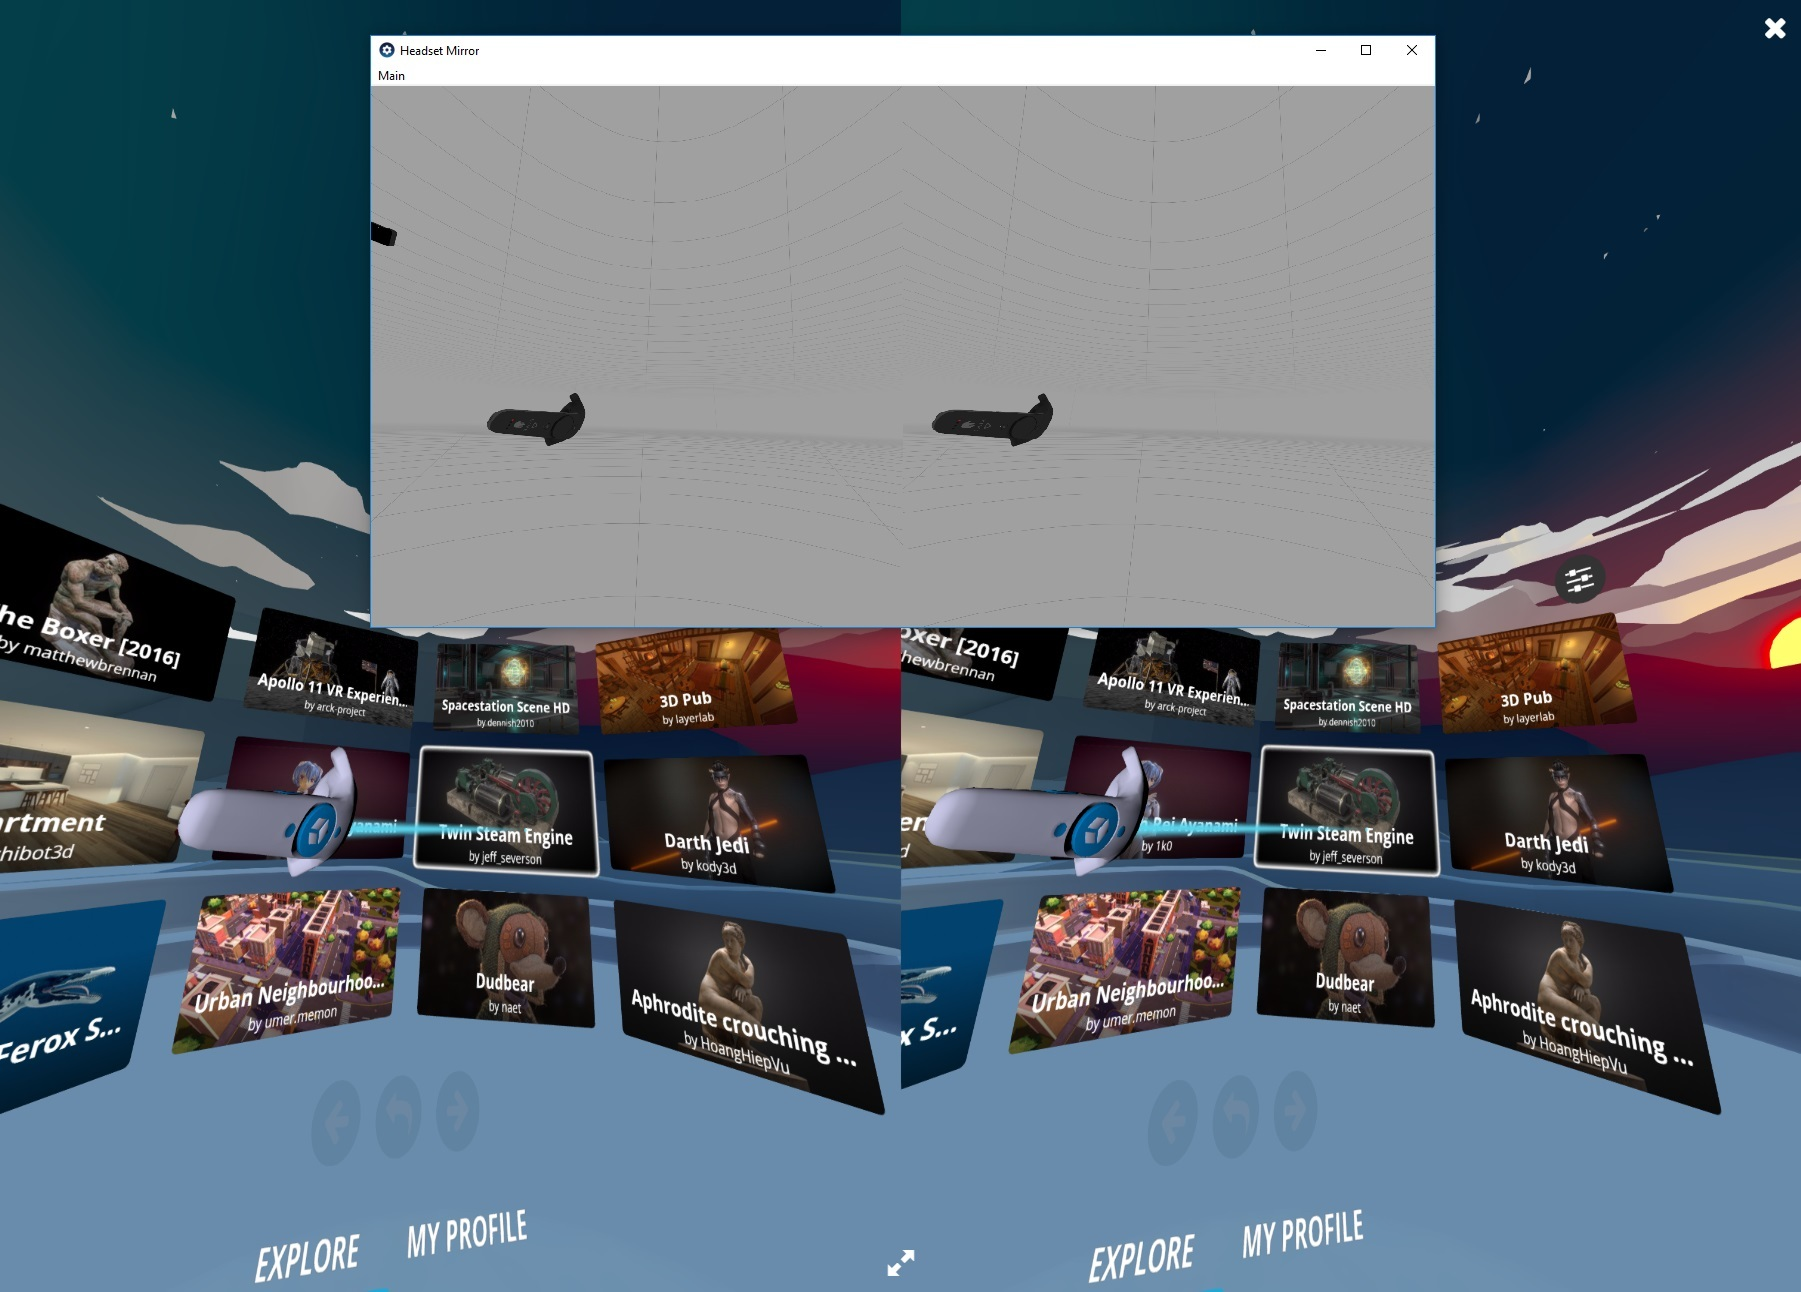 VR launcher doesn't show content in VIVE but tracks in